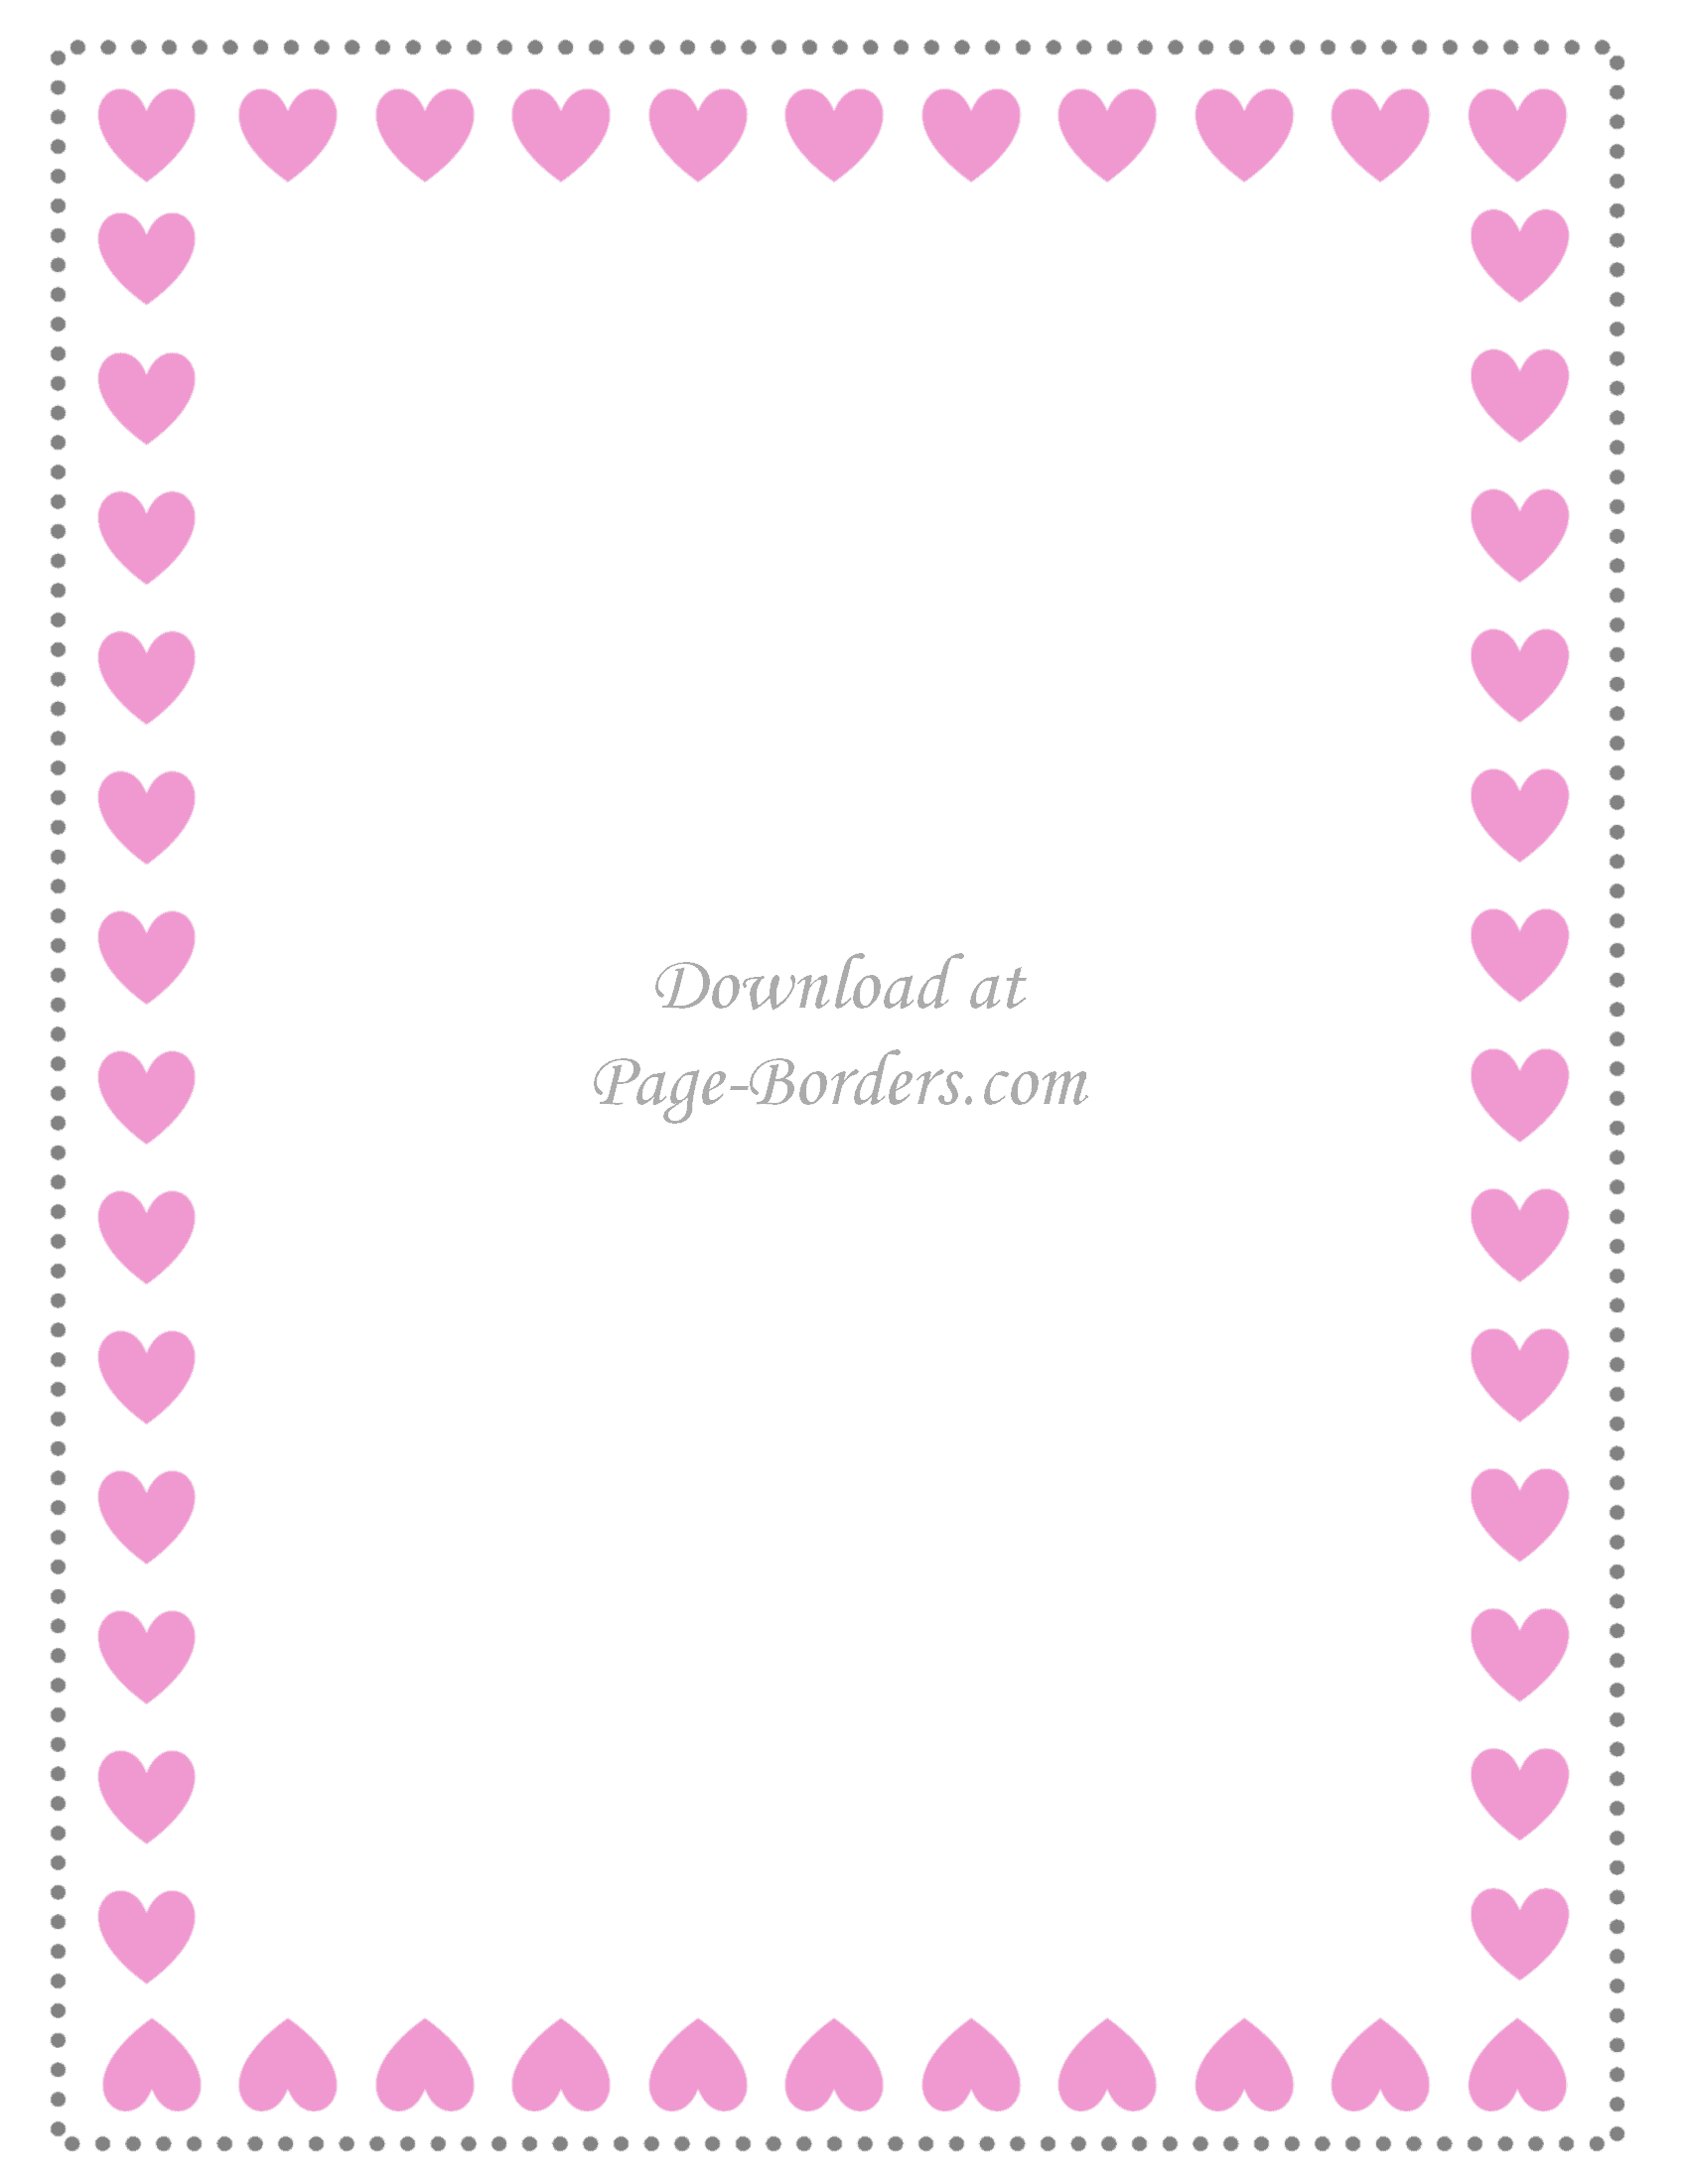 free printable heart border customize online or download